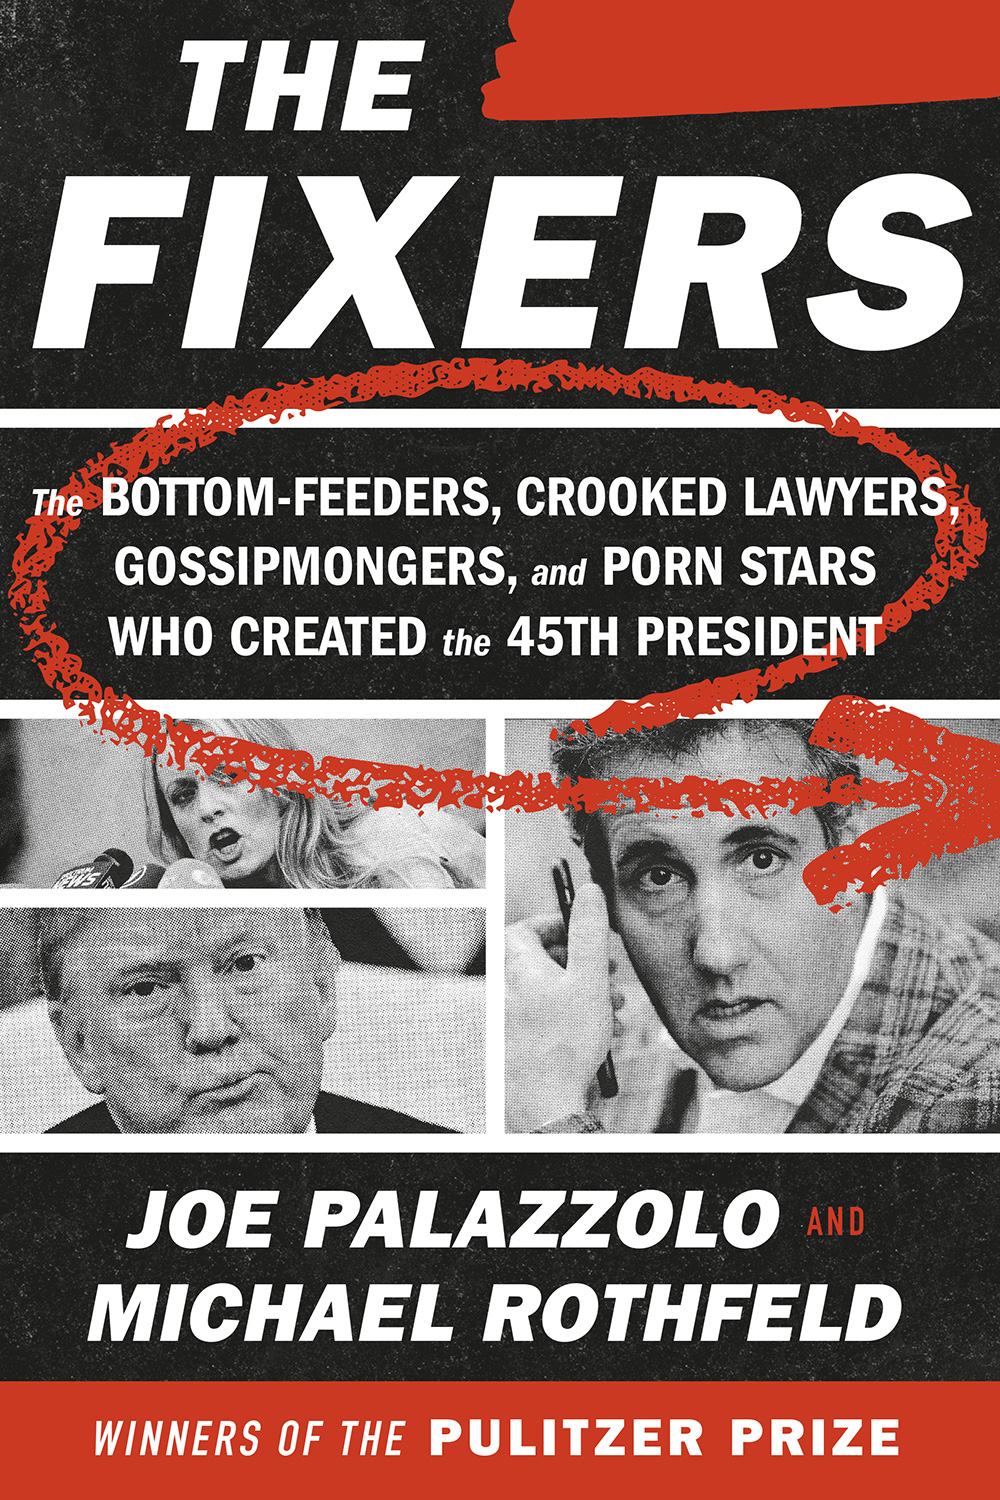 The Fixers THE BOTTOM-FEEDERS, CROOKED LAWYERS, GOSSIPMONGERS, AND PORN STARS WHO CREATED THE 45TH PRESIDENT